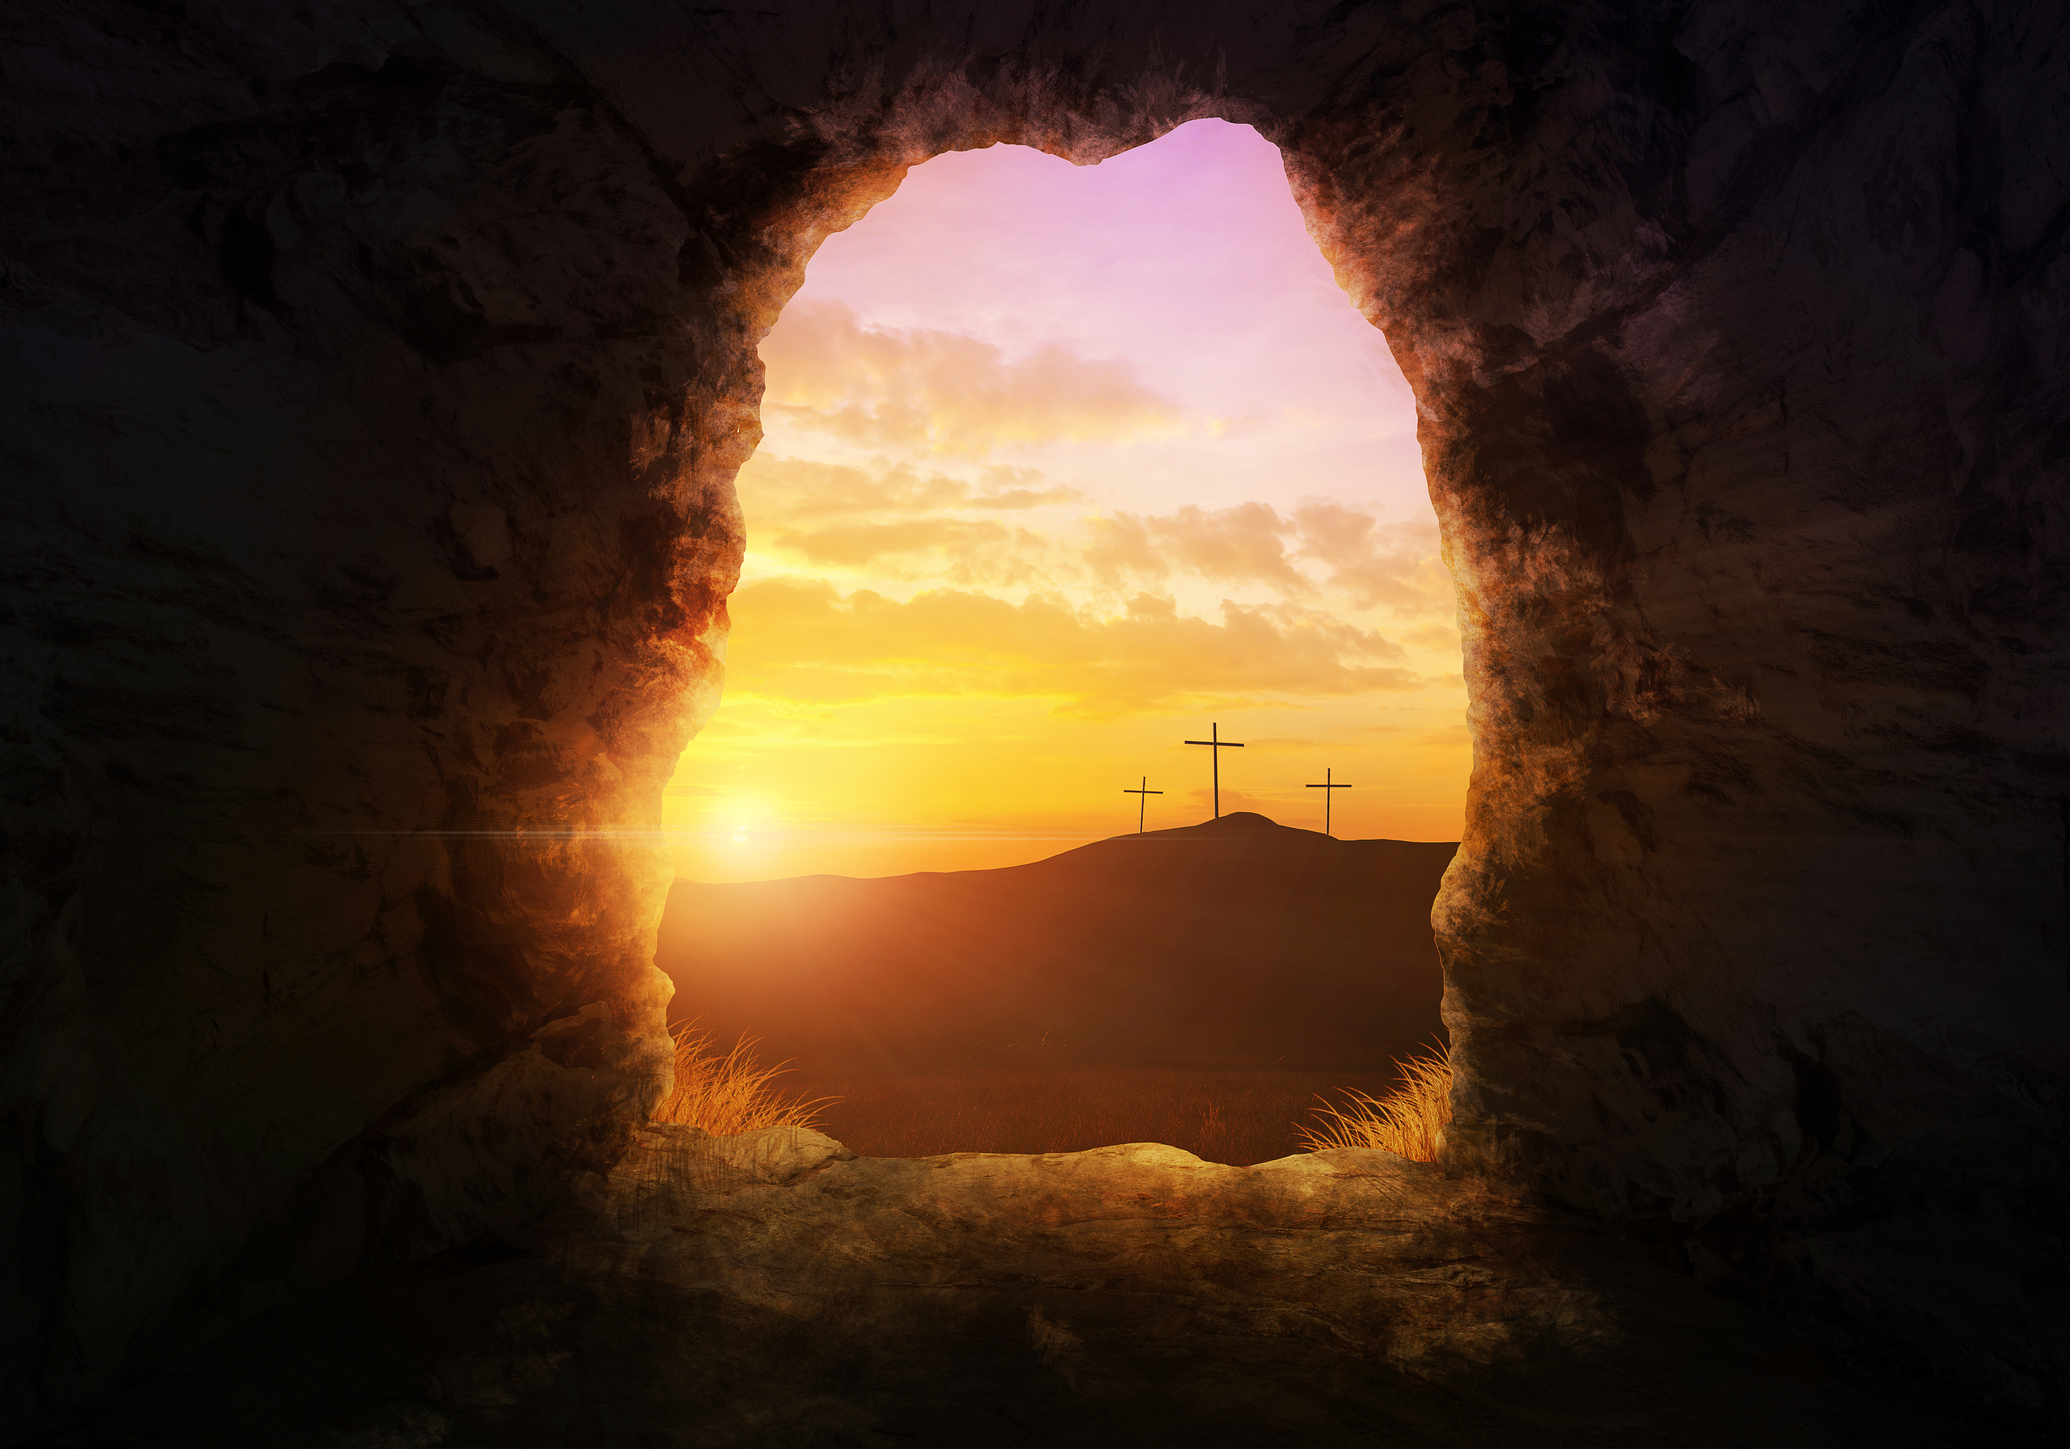 8-Day Easter Devotional: All My Hope is In Jesus (Day 7)